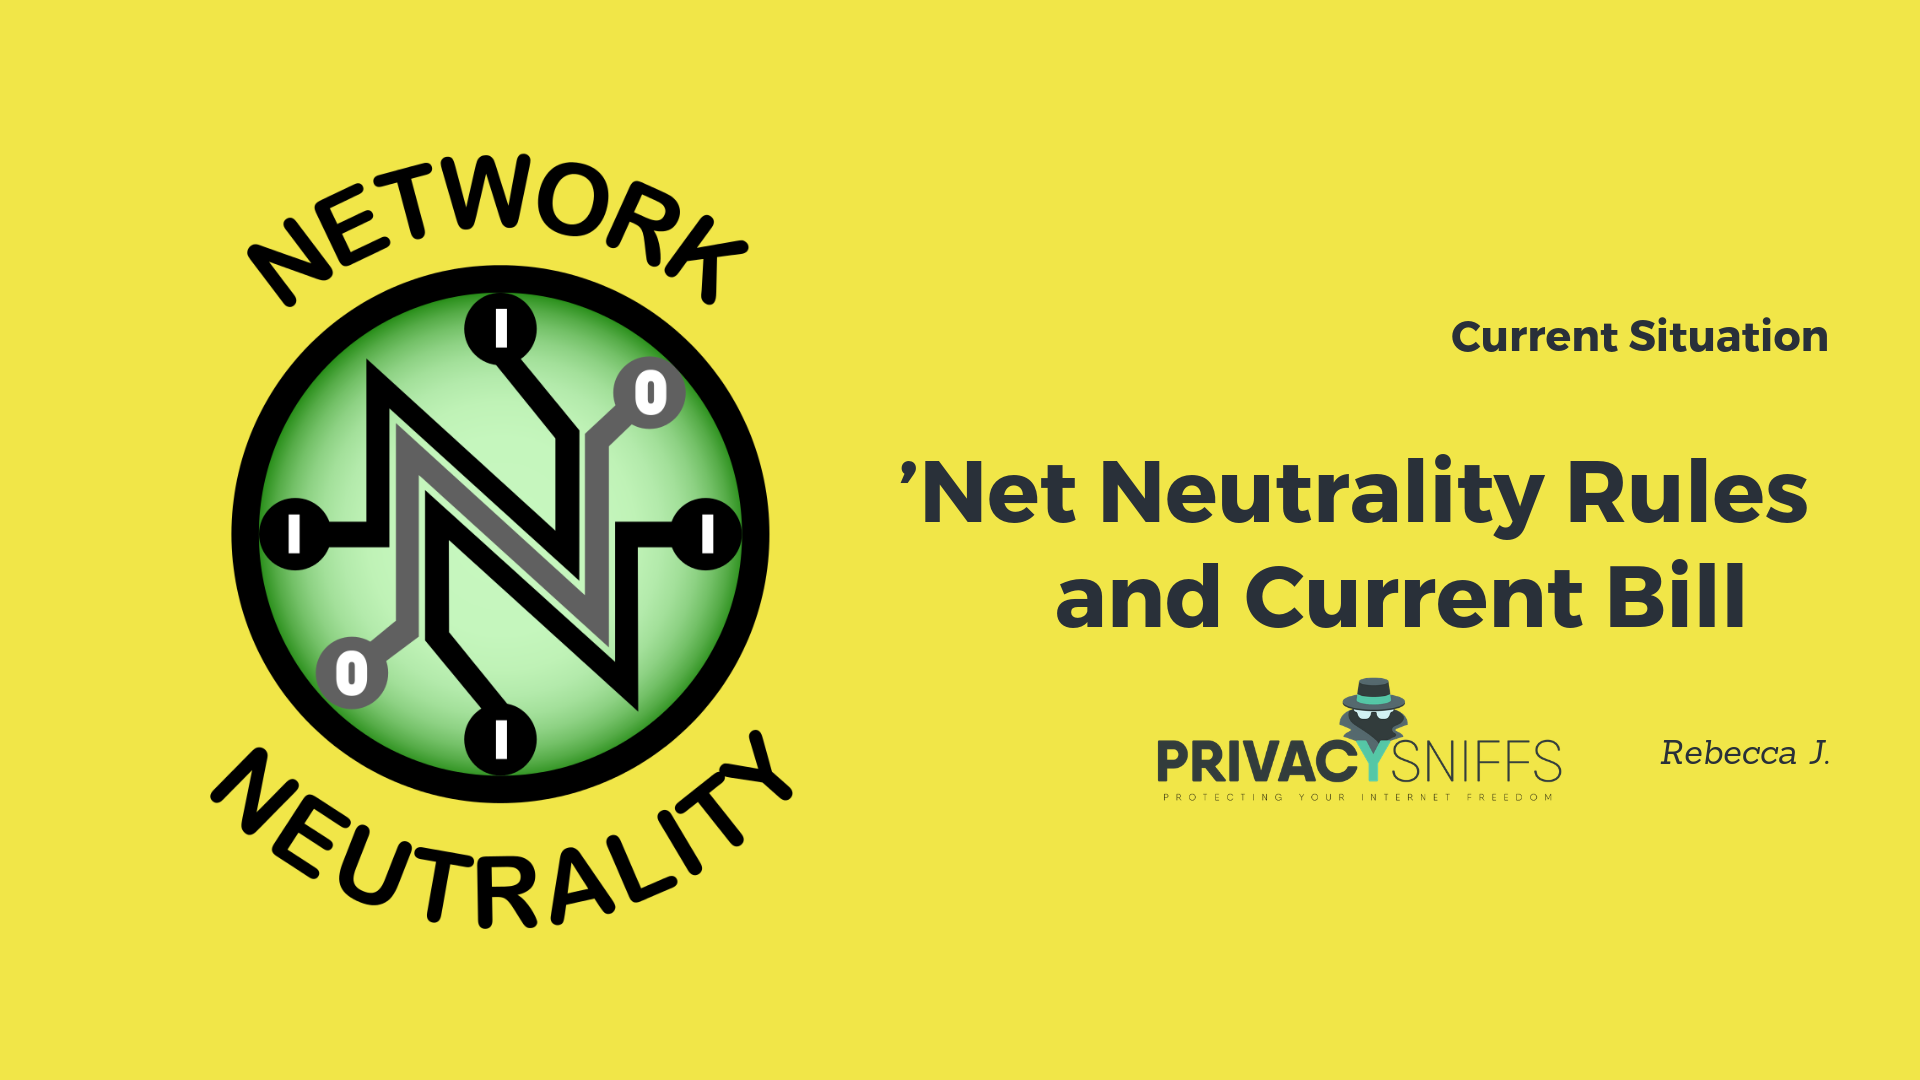 Net Neutrality Rules and Current Bill